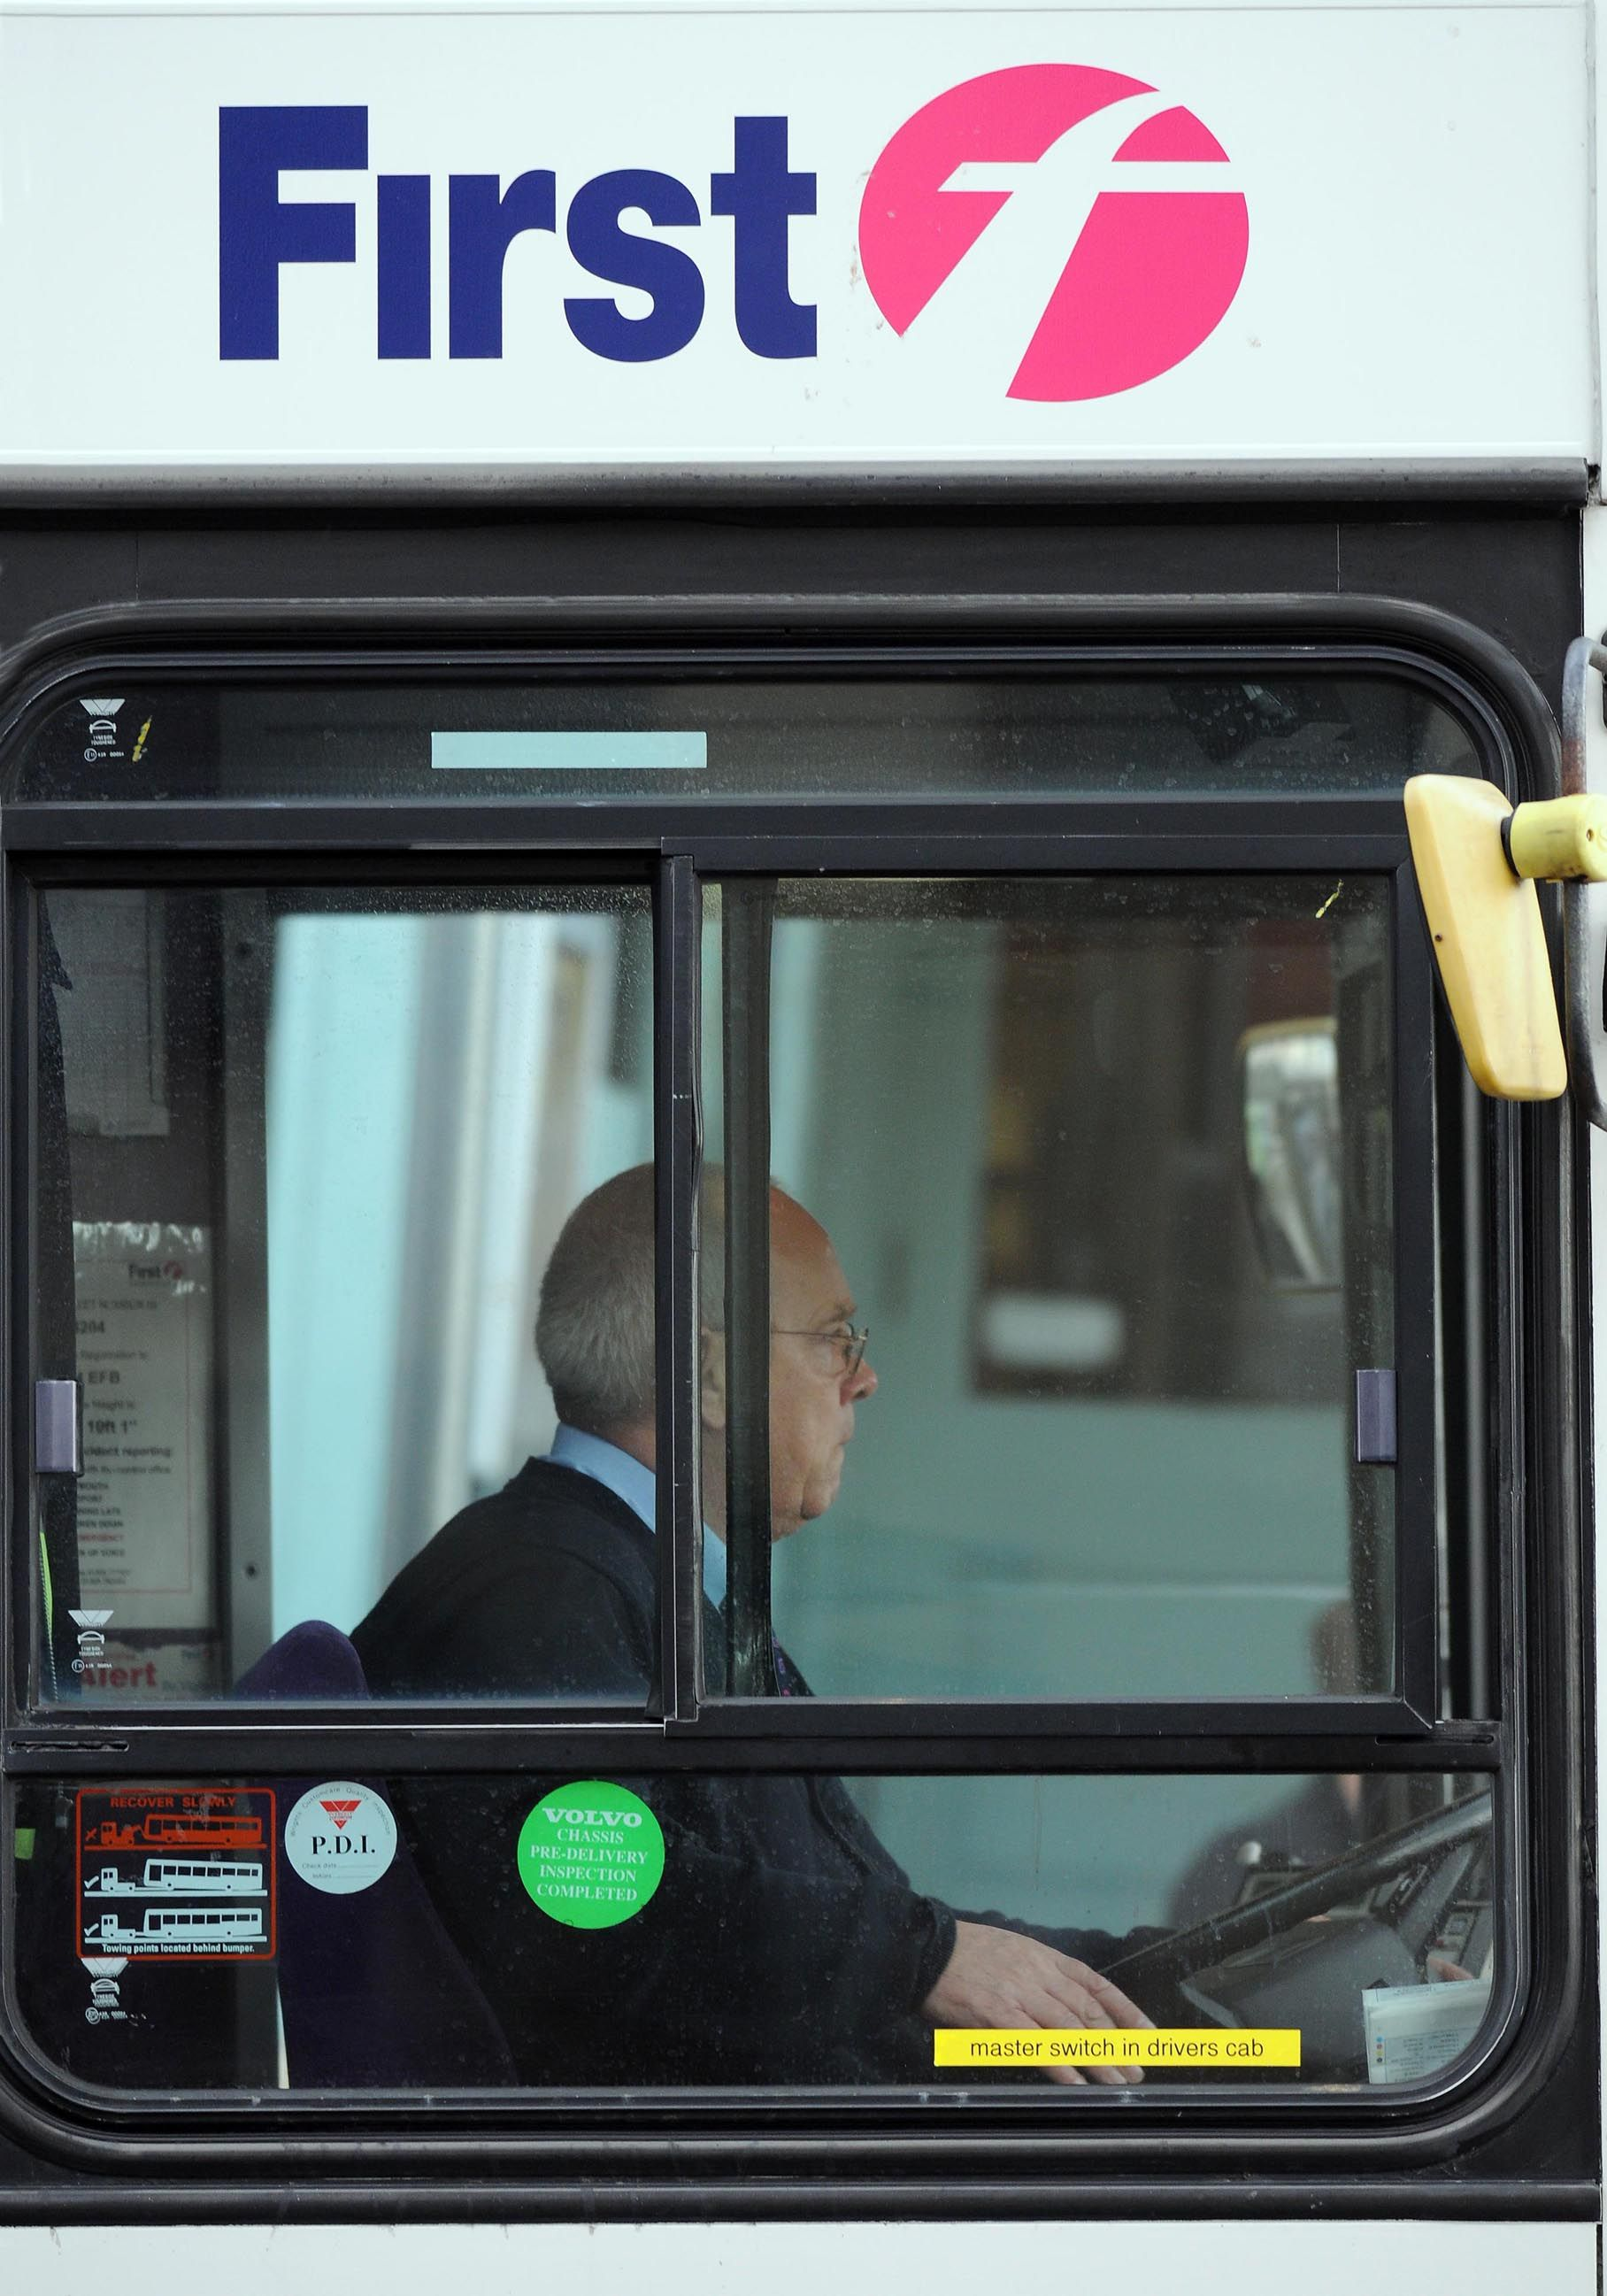 Bus cuts: county council leader speaks out